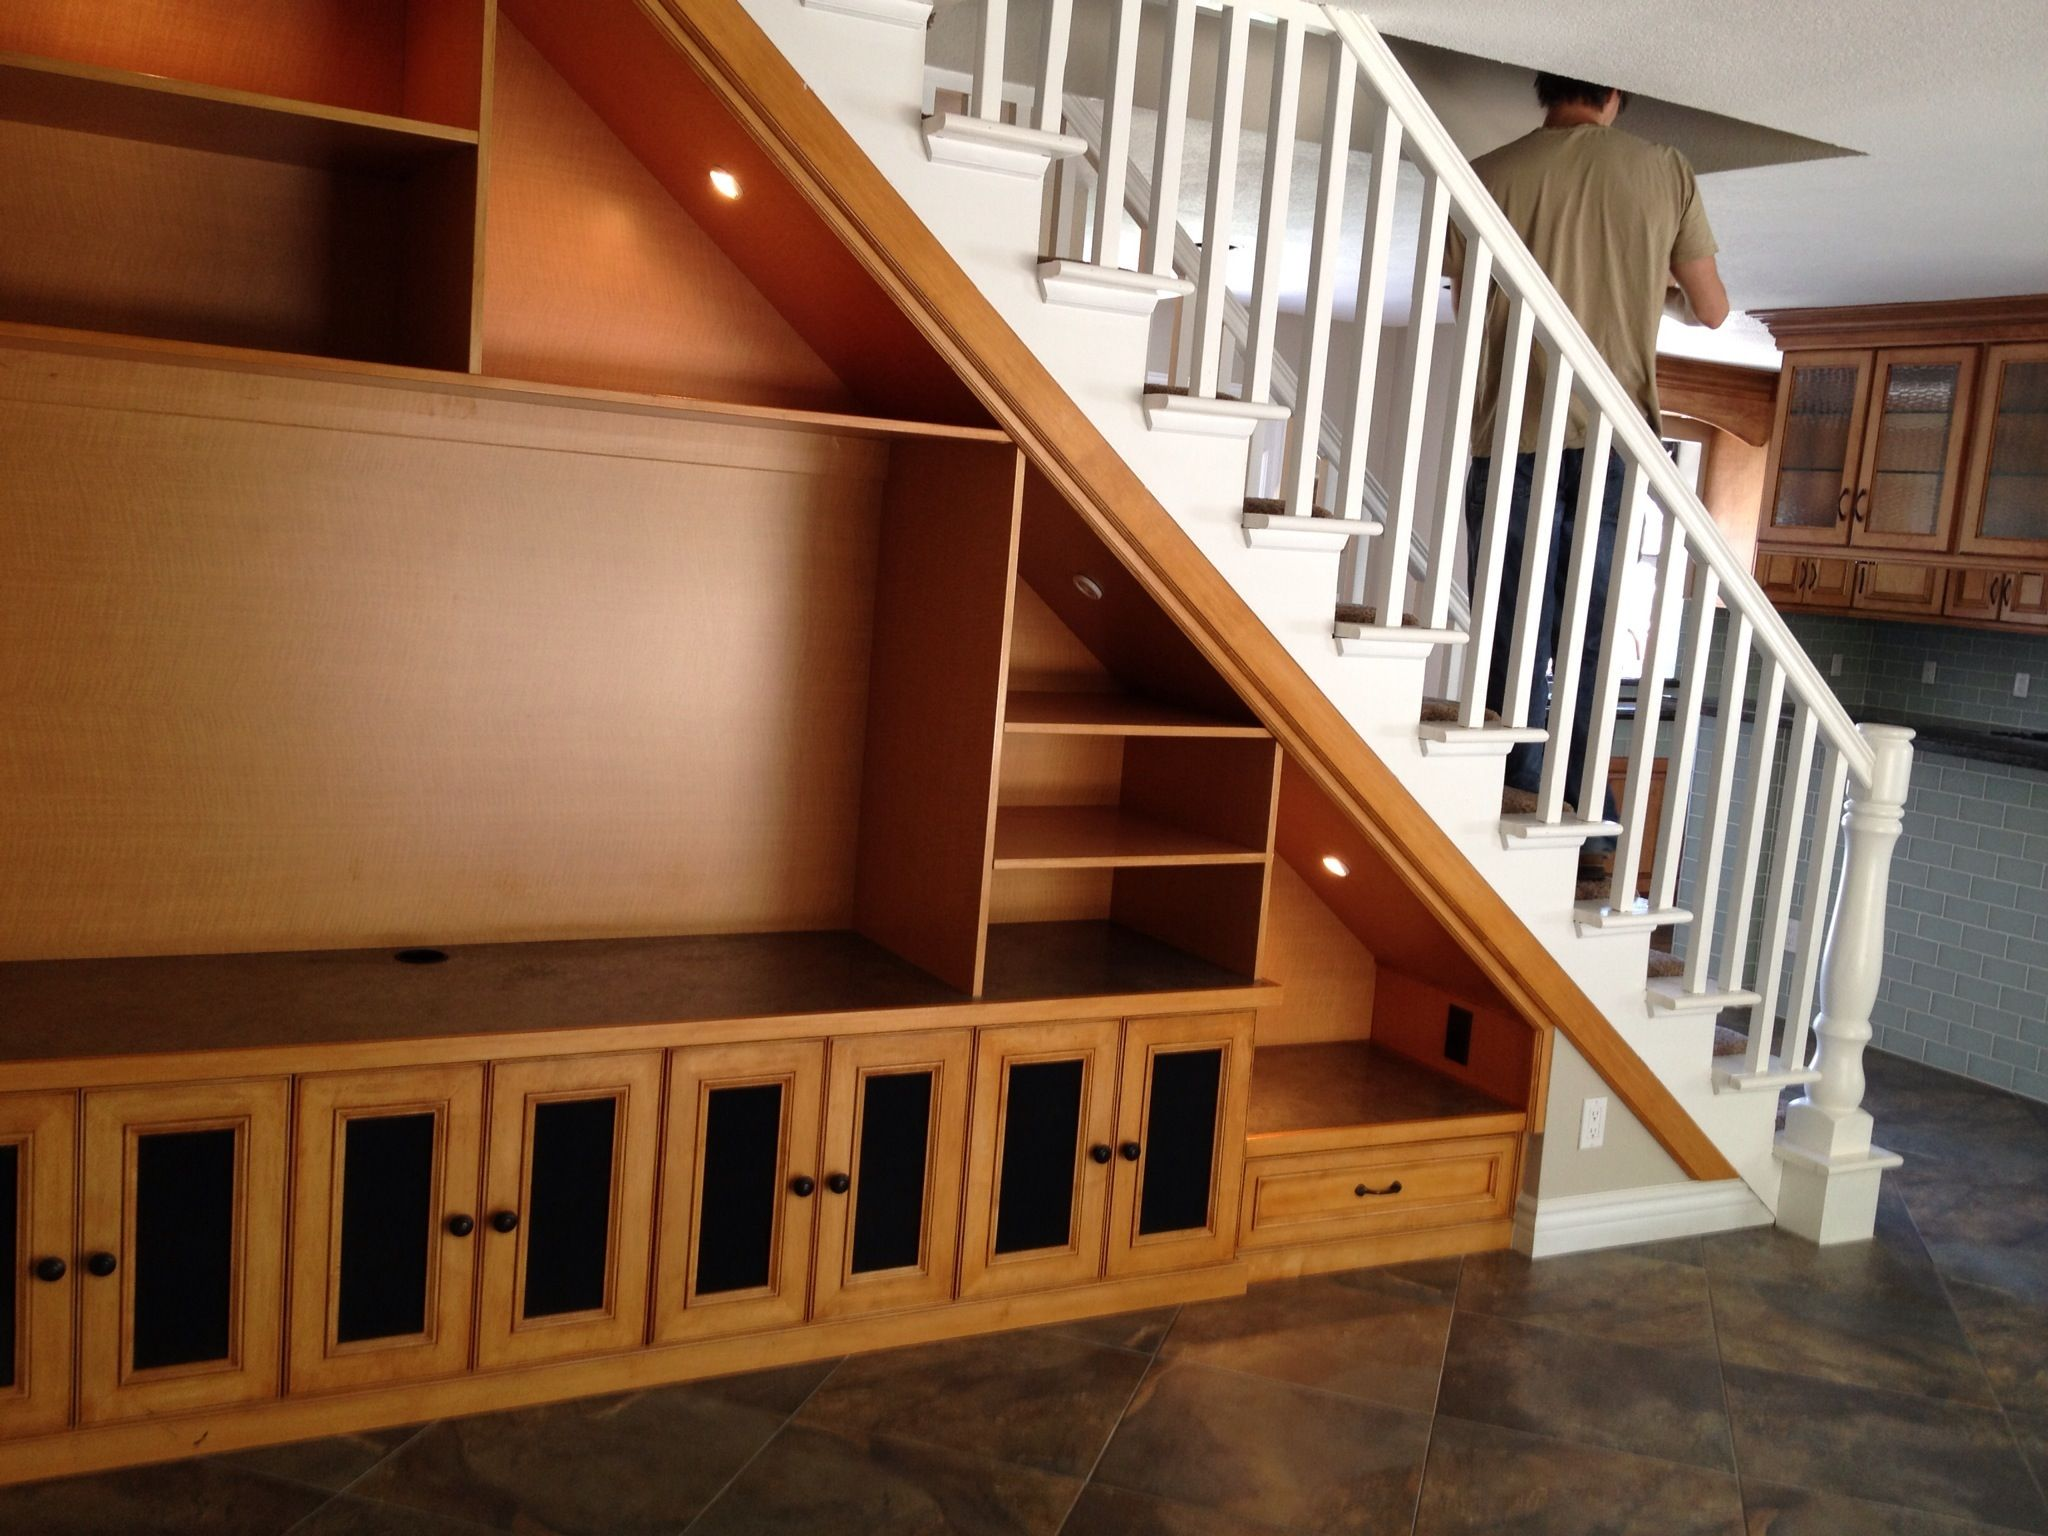 Best Solution For Open Space Under Staircase This Is Double Sided With Entertainment Center On One 640 x 480